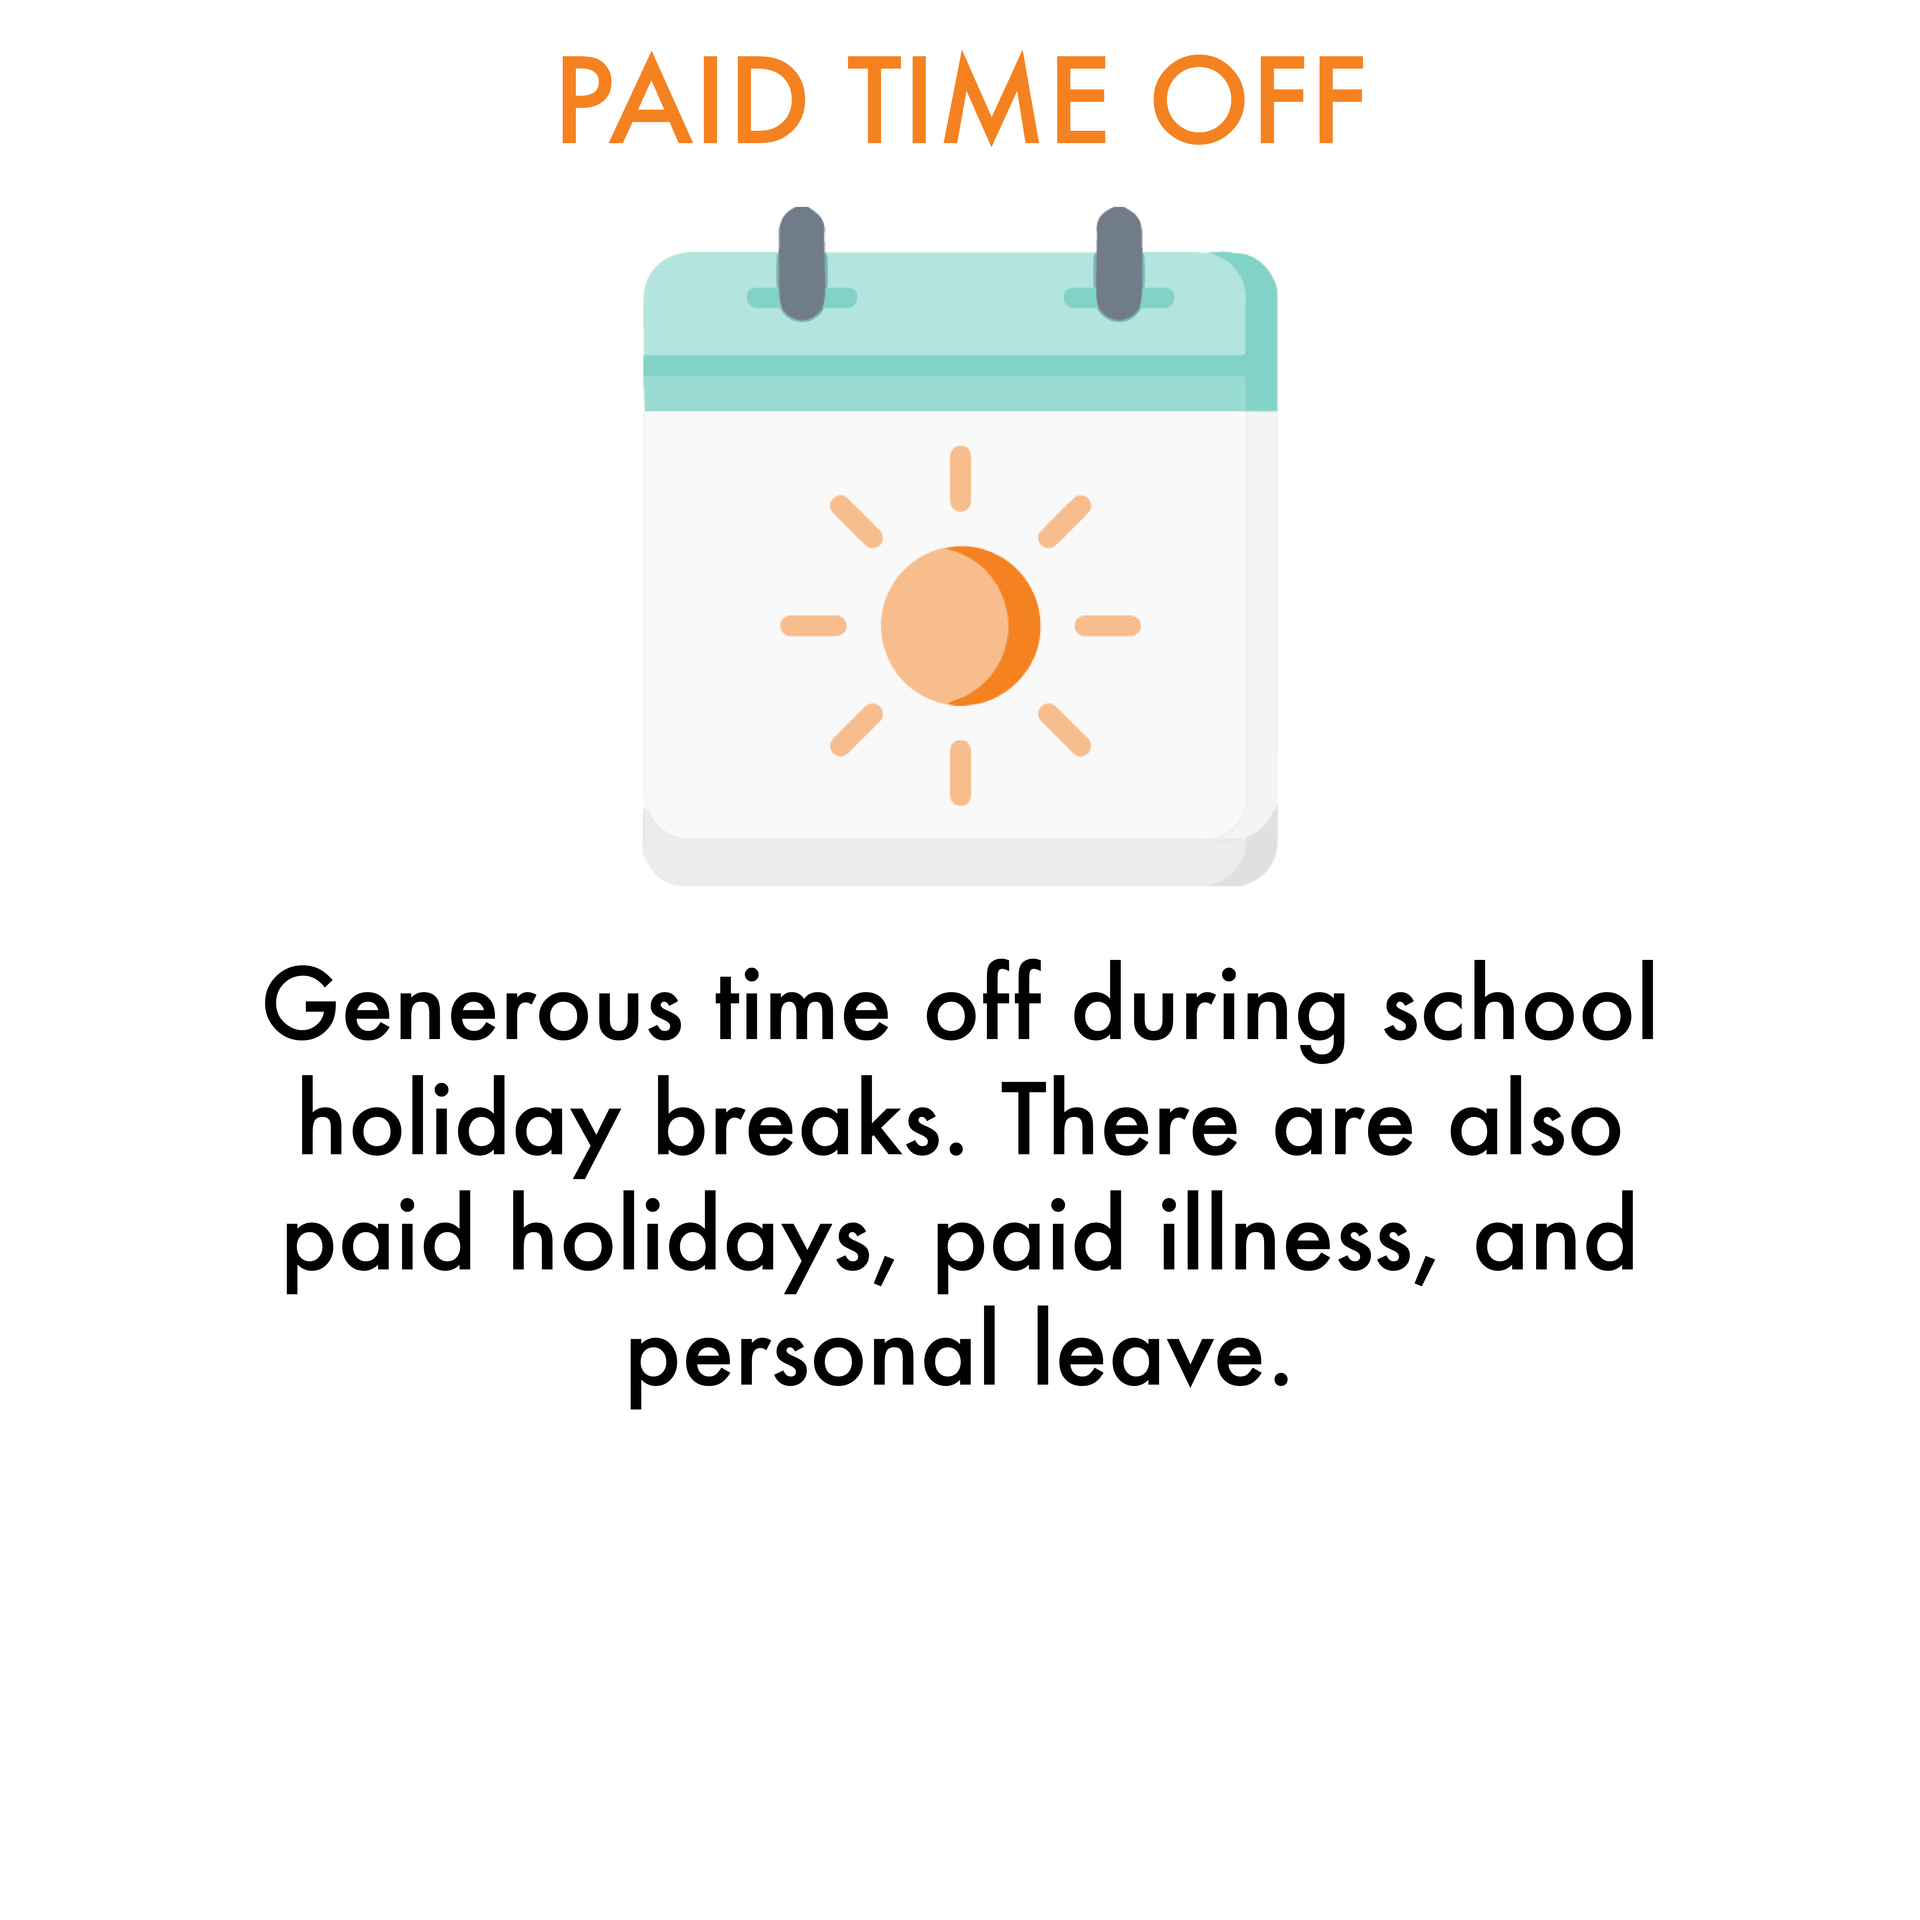 Paid Time Off: Generous time off during school holiday breaks. There are also paid holidays, paid illness, and personal leave.